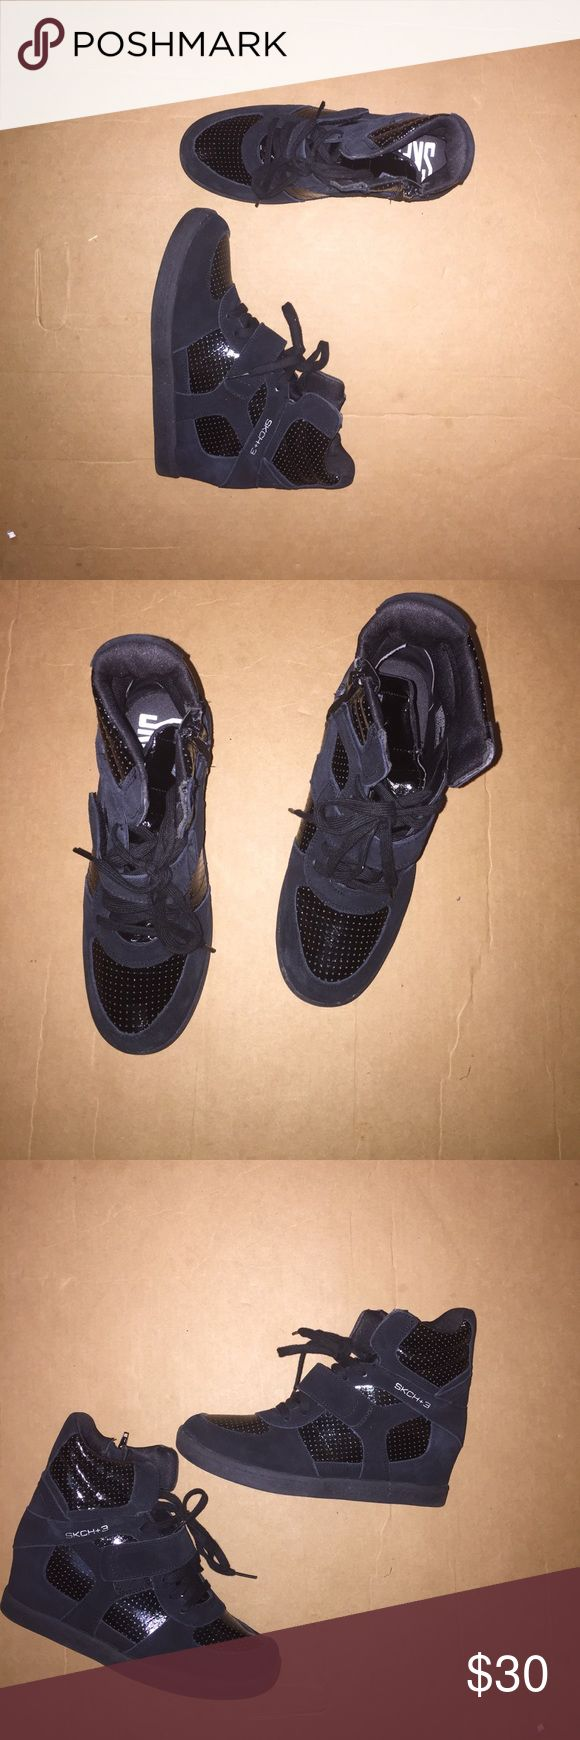 Skechers wedge sneakers Skechers wedge sneakers in excellent condition leather/ synthetic Skechers Shoes Athletic Shoes